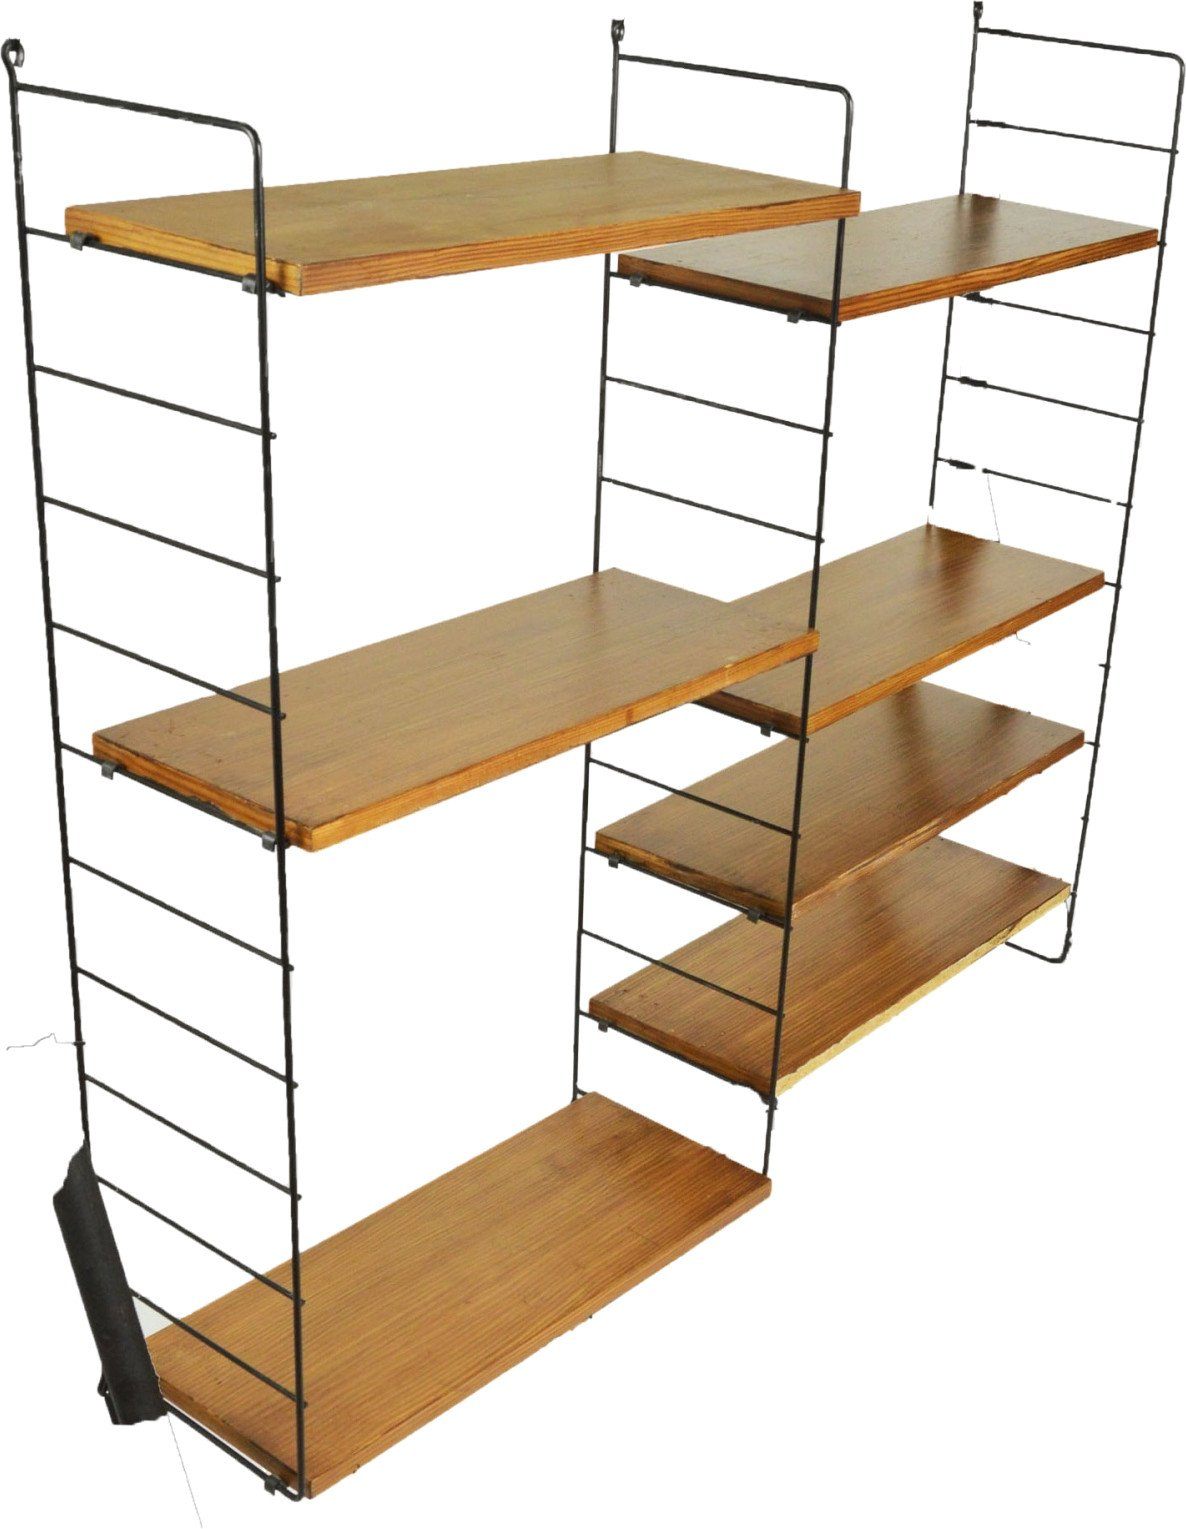 Shelf by Strinning, Sweden, 1960s